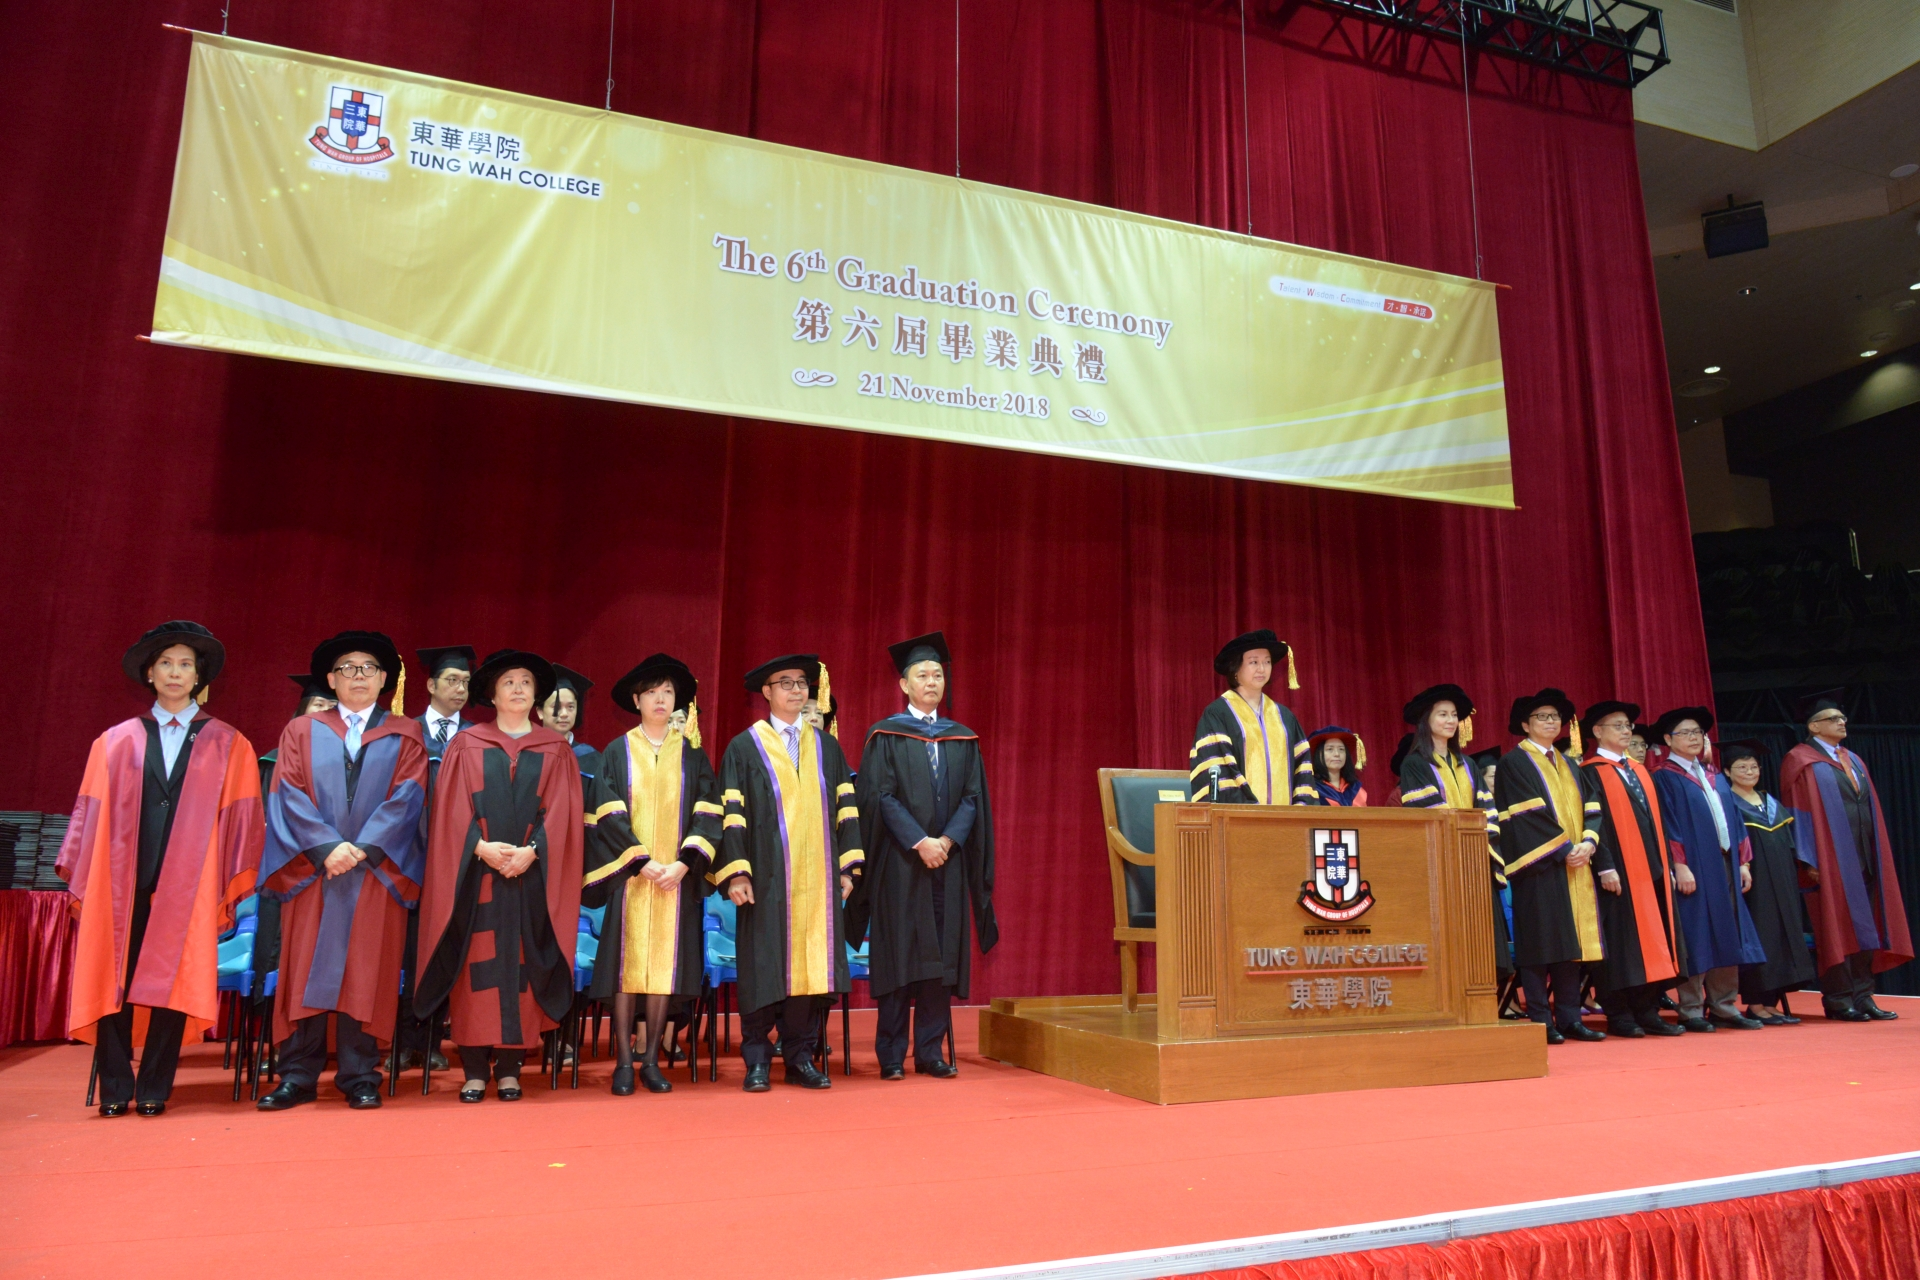 The 6th Graduation Ceremony